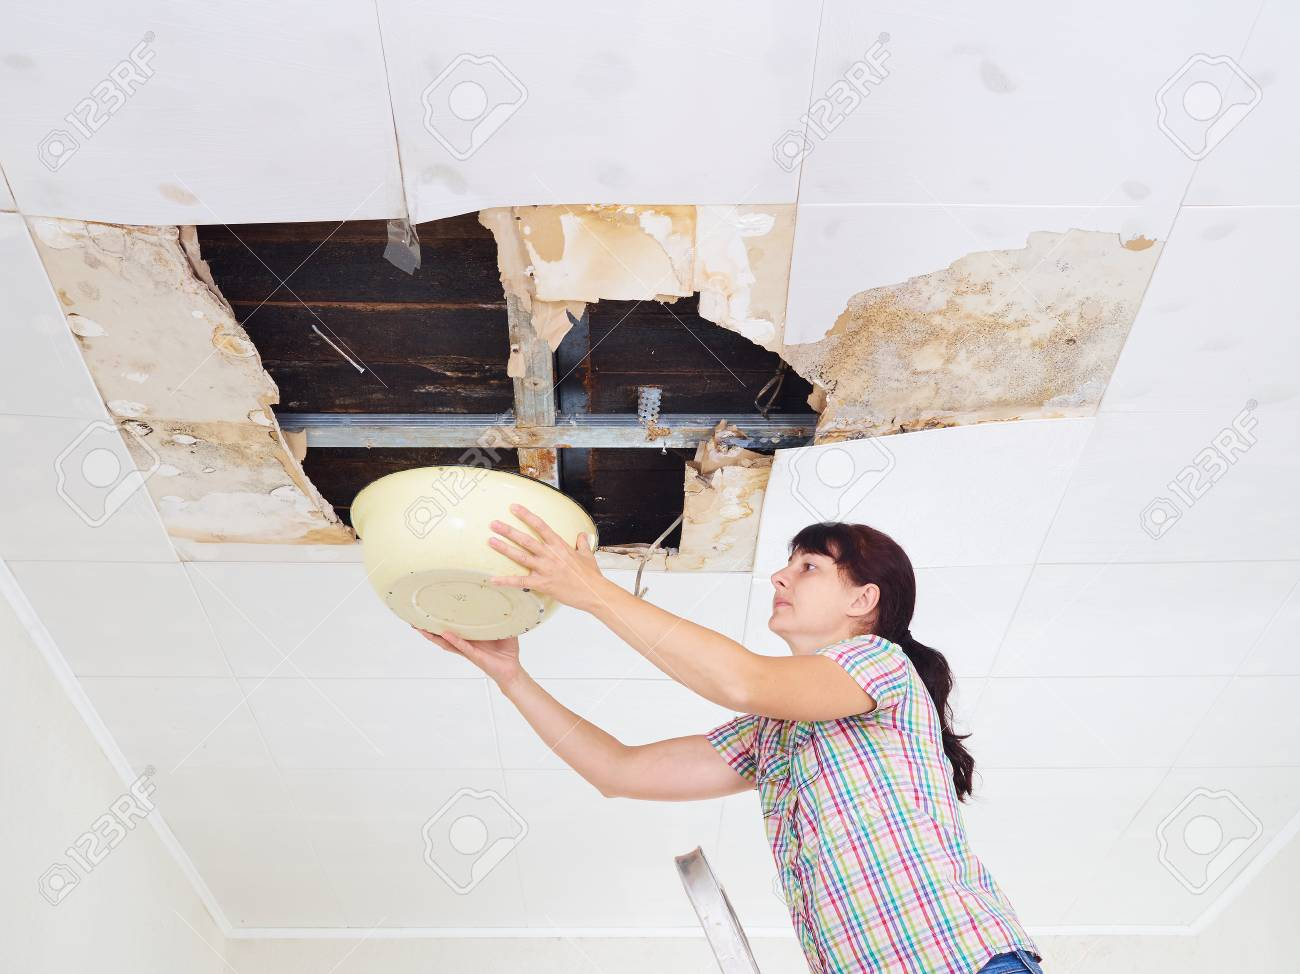 Young Woman Collecting Water In basin From Ceiling. Ceiling panels damaged huge hole in roof from rainwater leakage.Water damaged ceiling . - 66391578